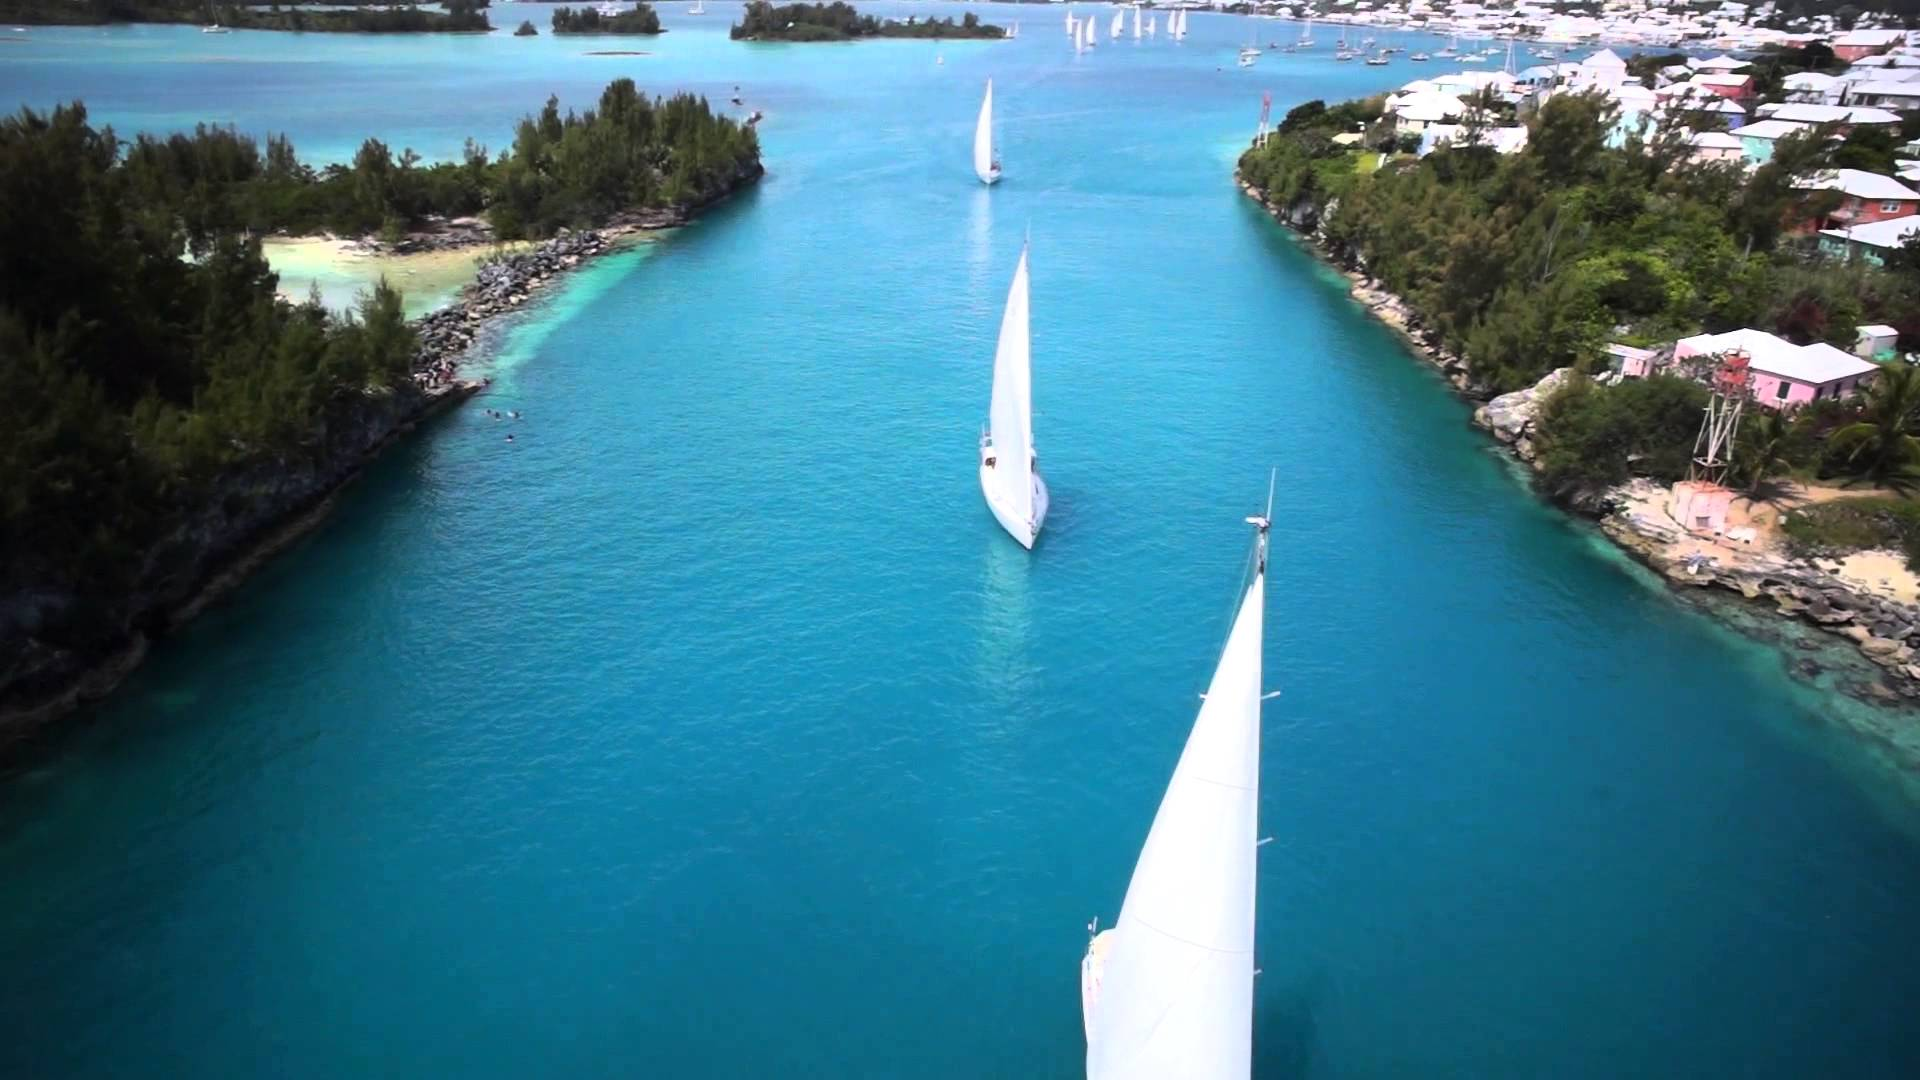 ARC Europe 2014 – World Cruising Club #Bermuda Departure 2014 @ARCrally @BermudaAerial